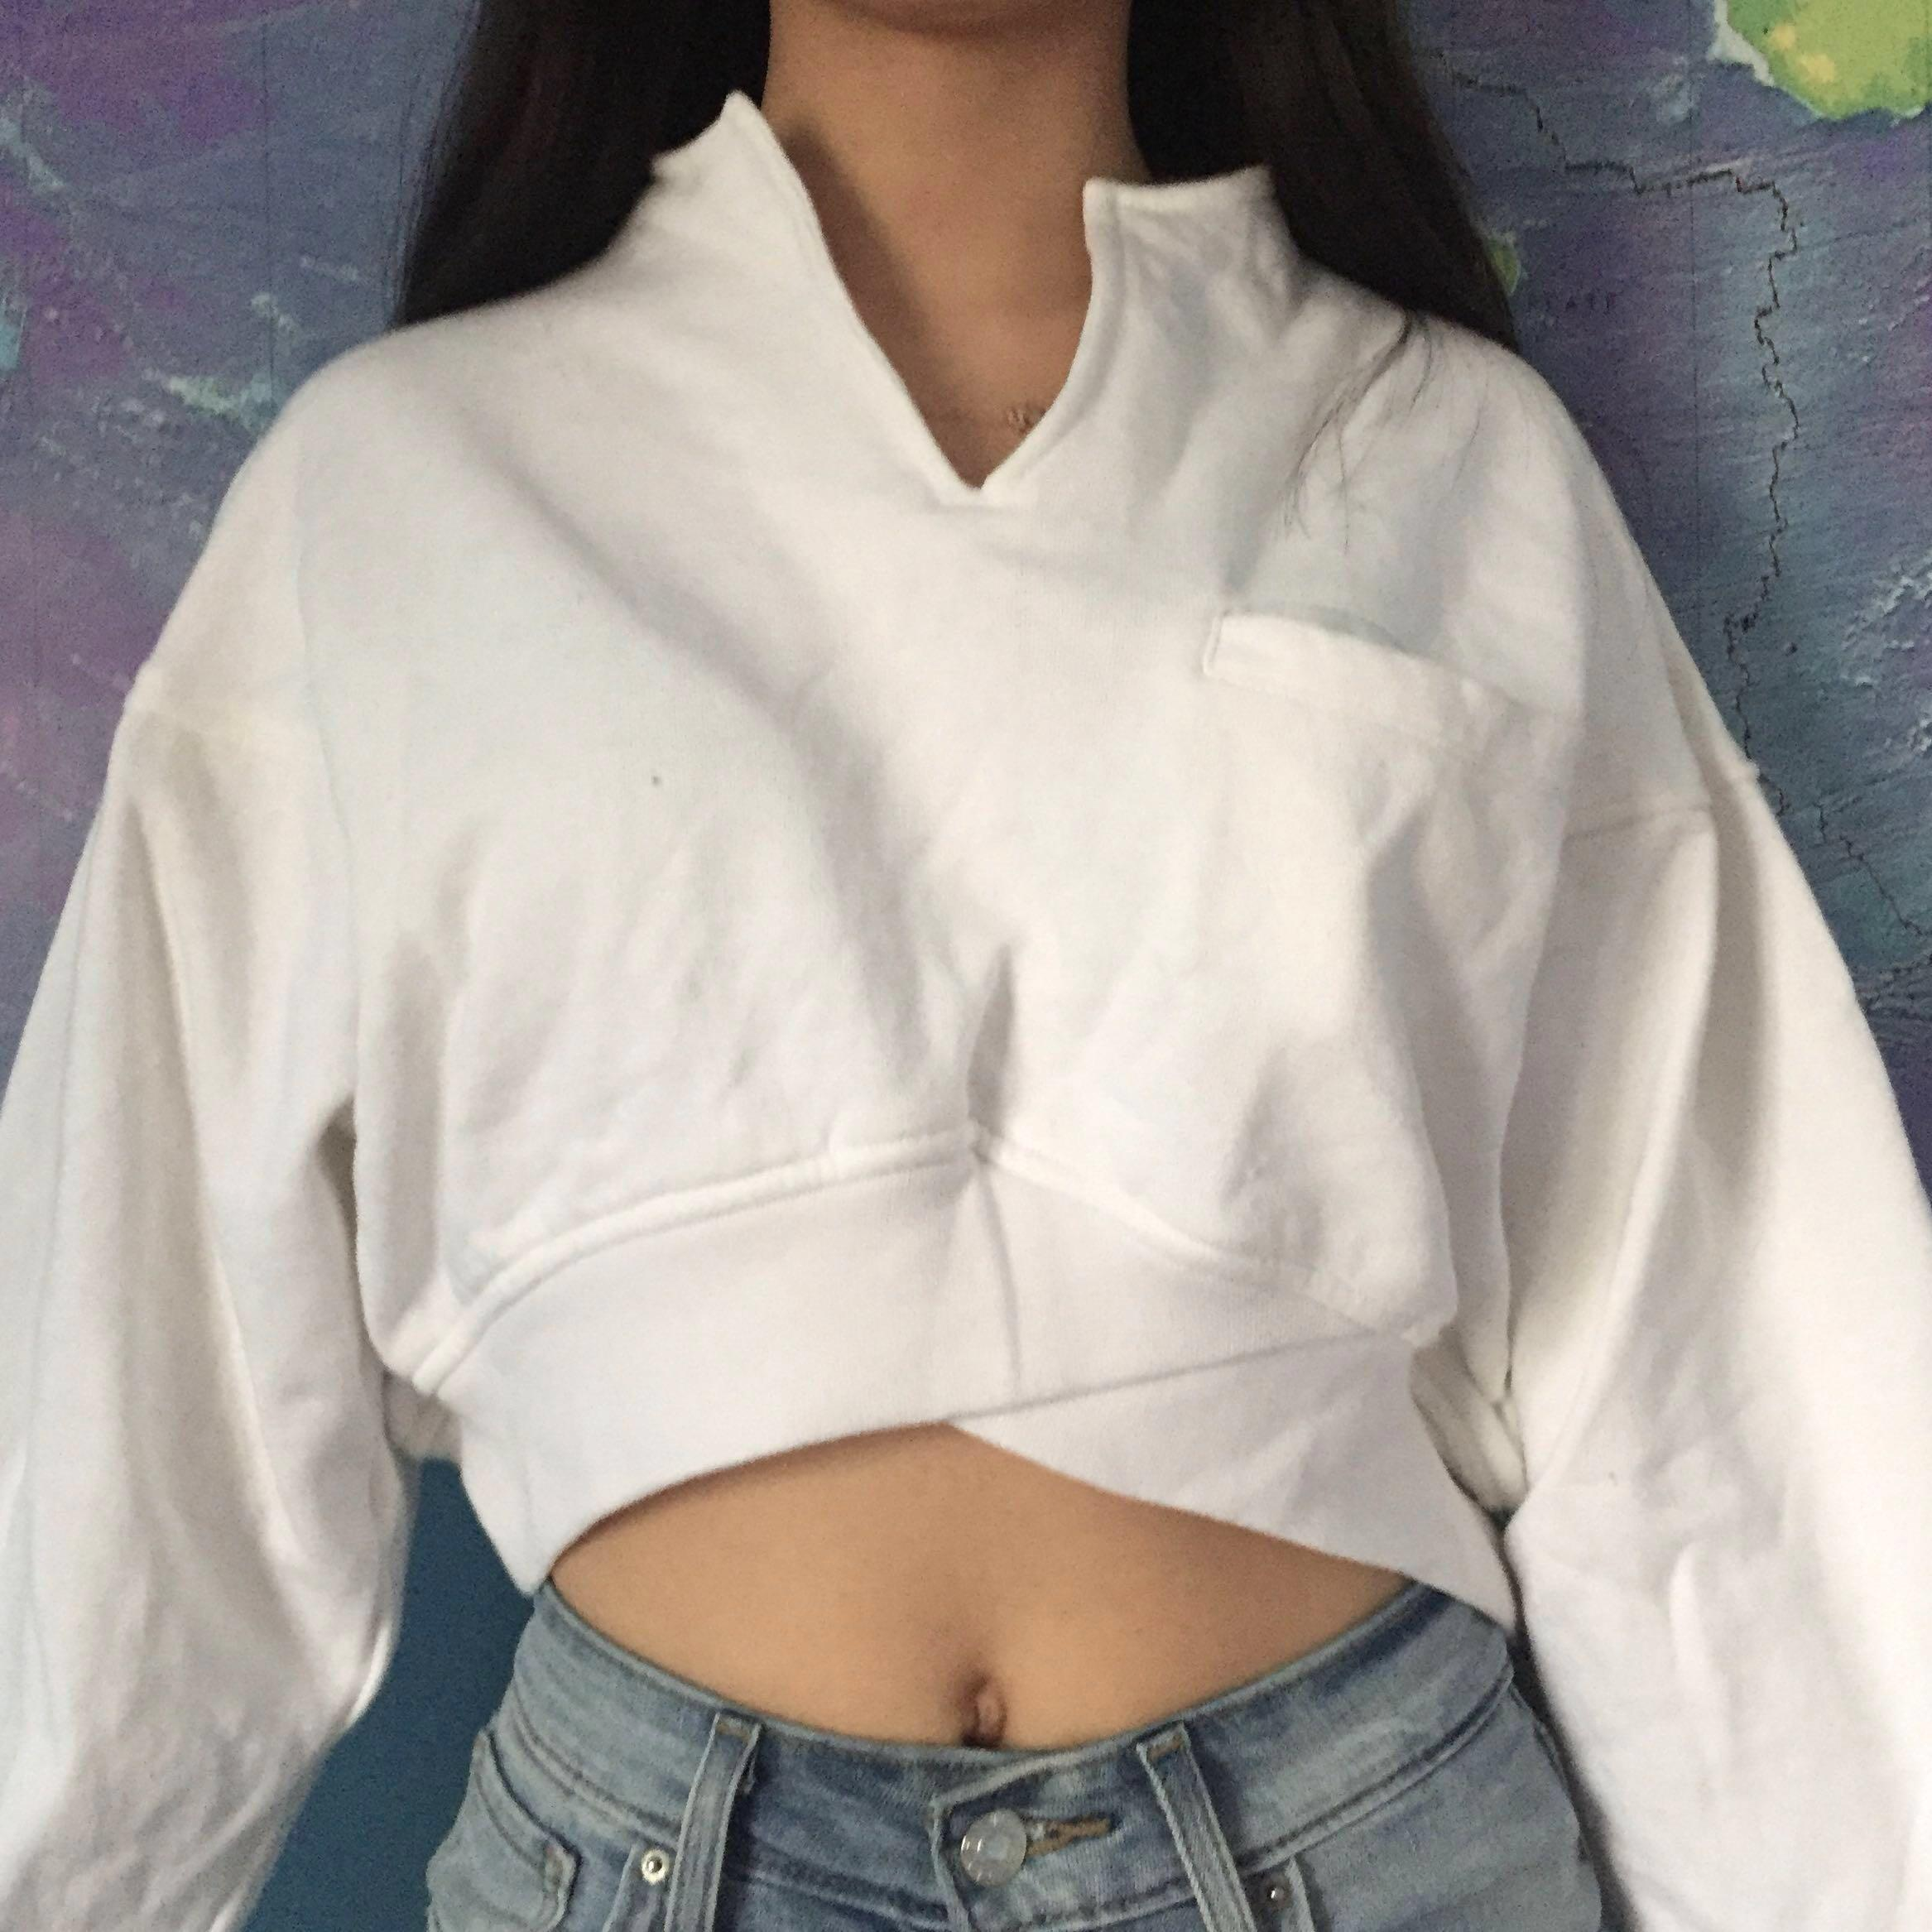 Cropped White Quarter Zip Style Sweater w/ front pocket